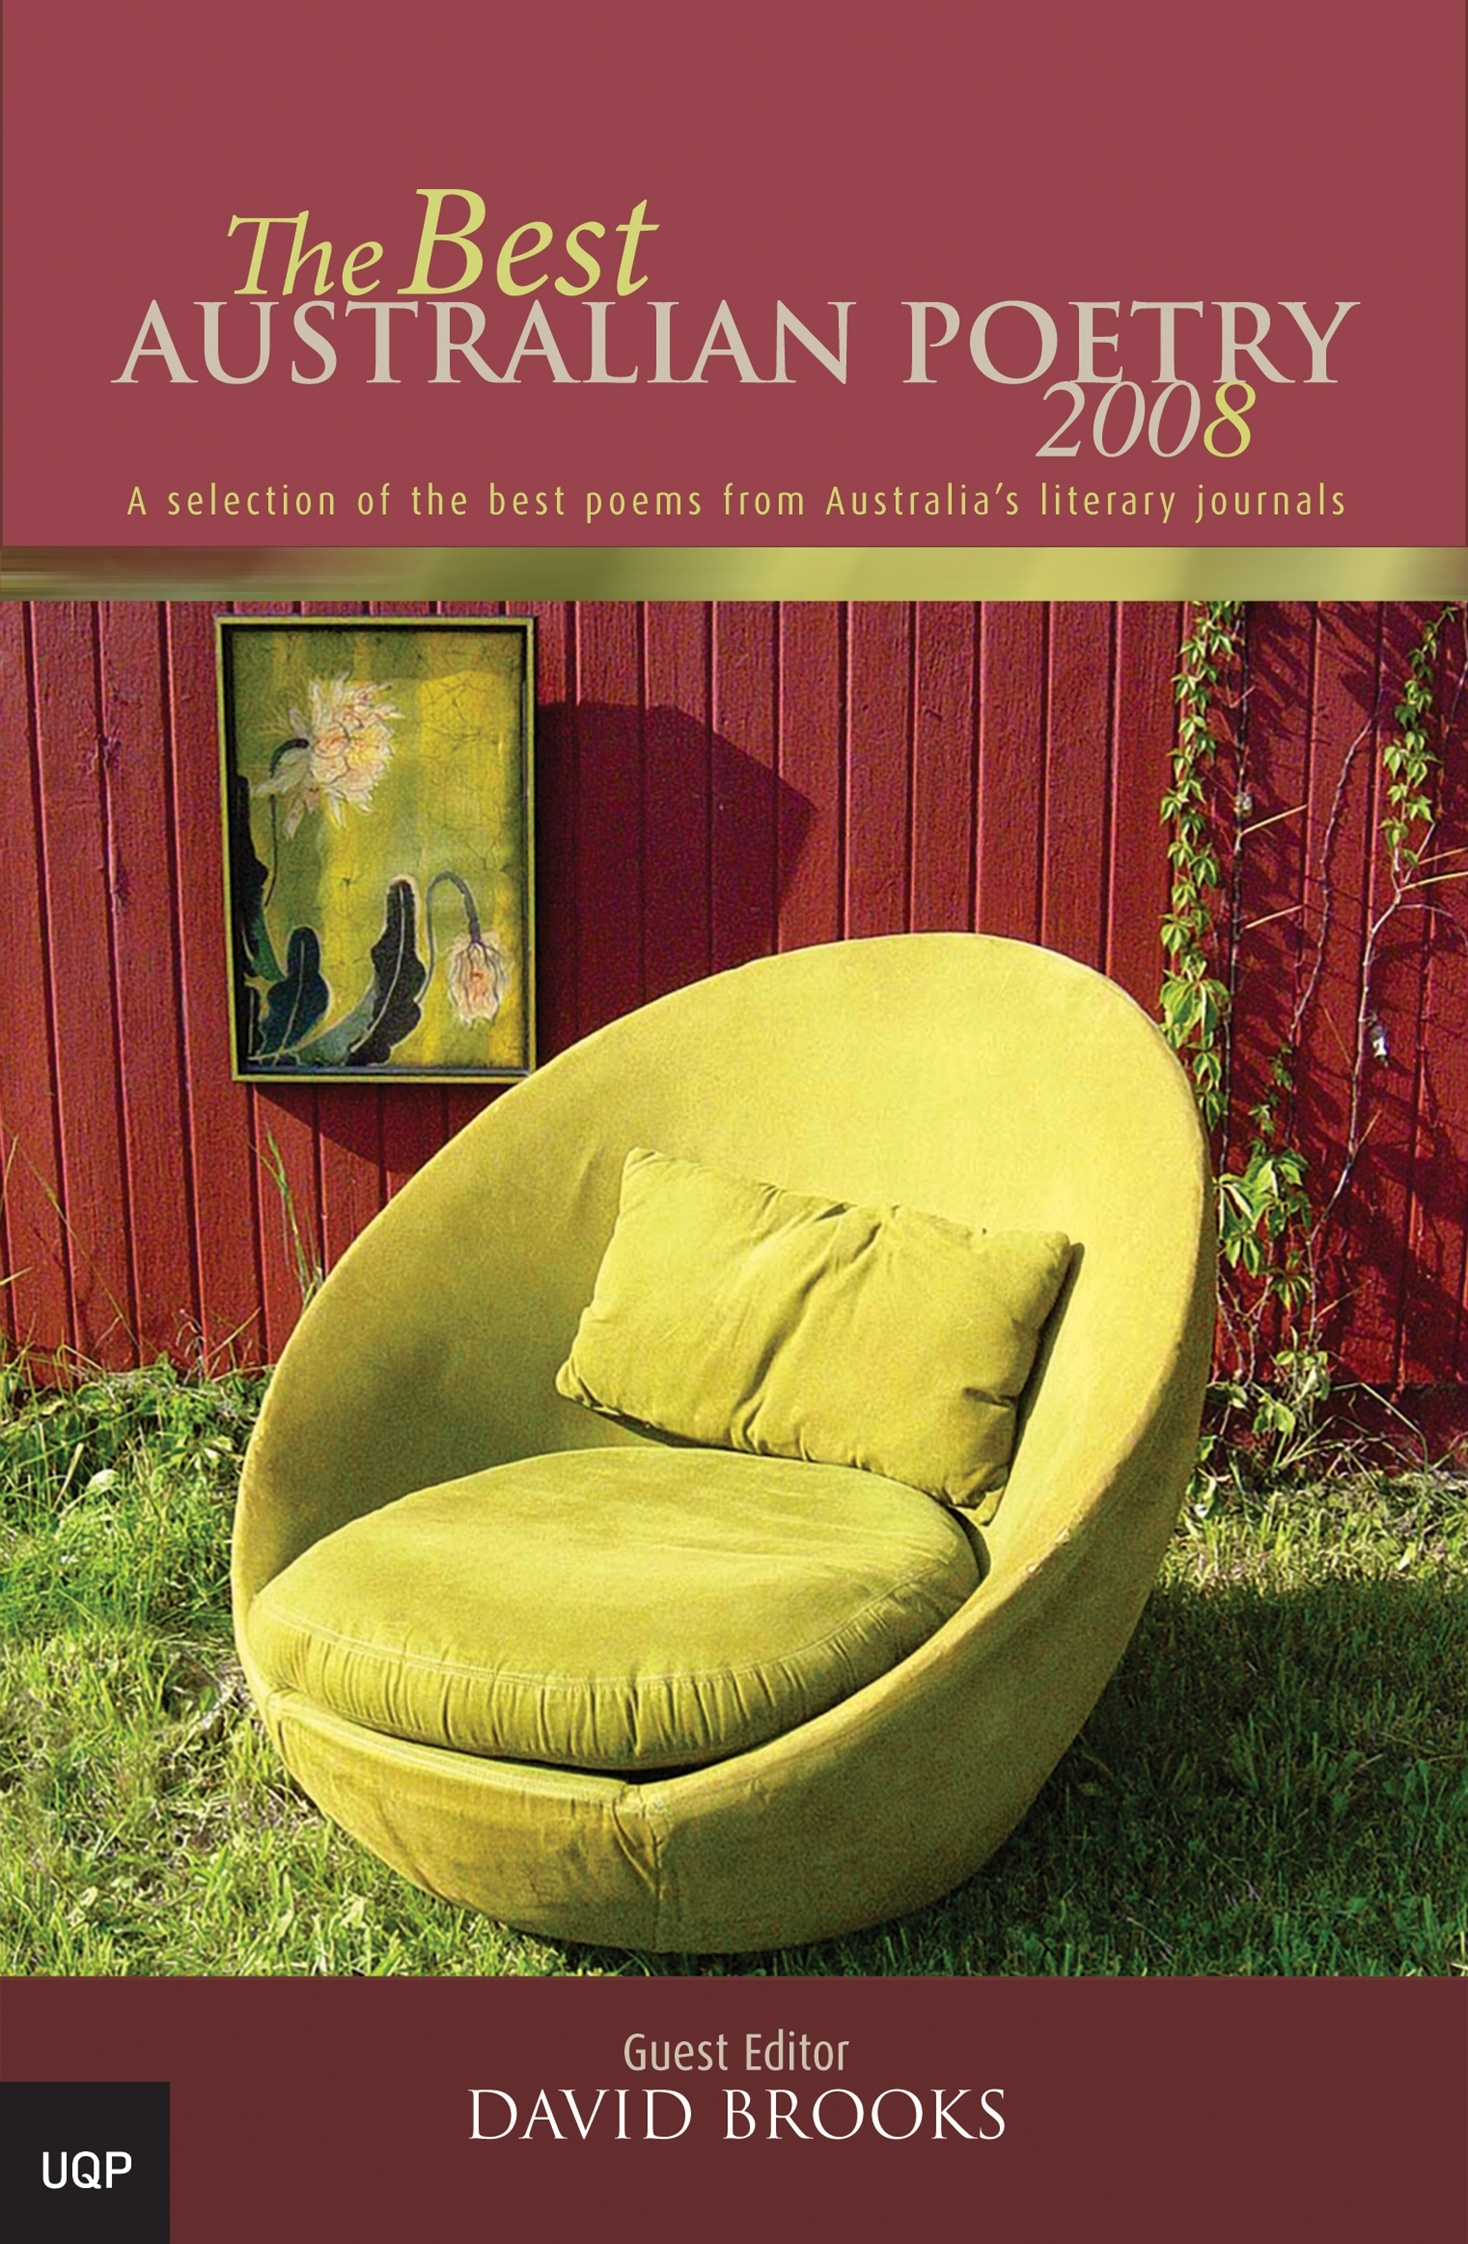 Book Cover: The Best Australian Poetry 2008